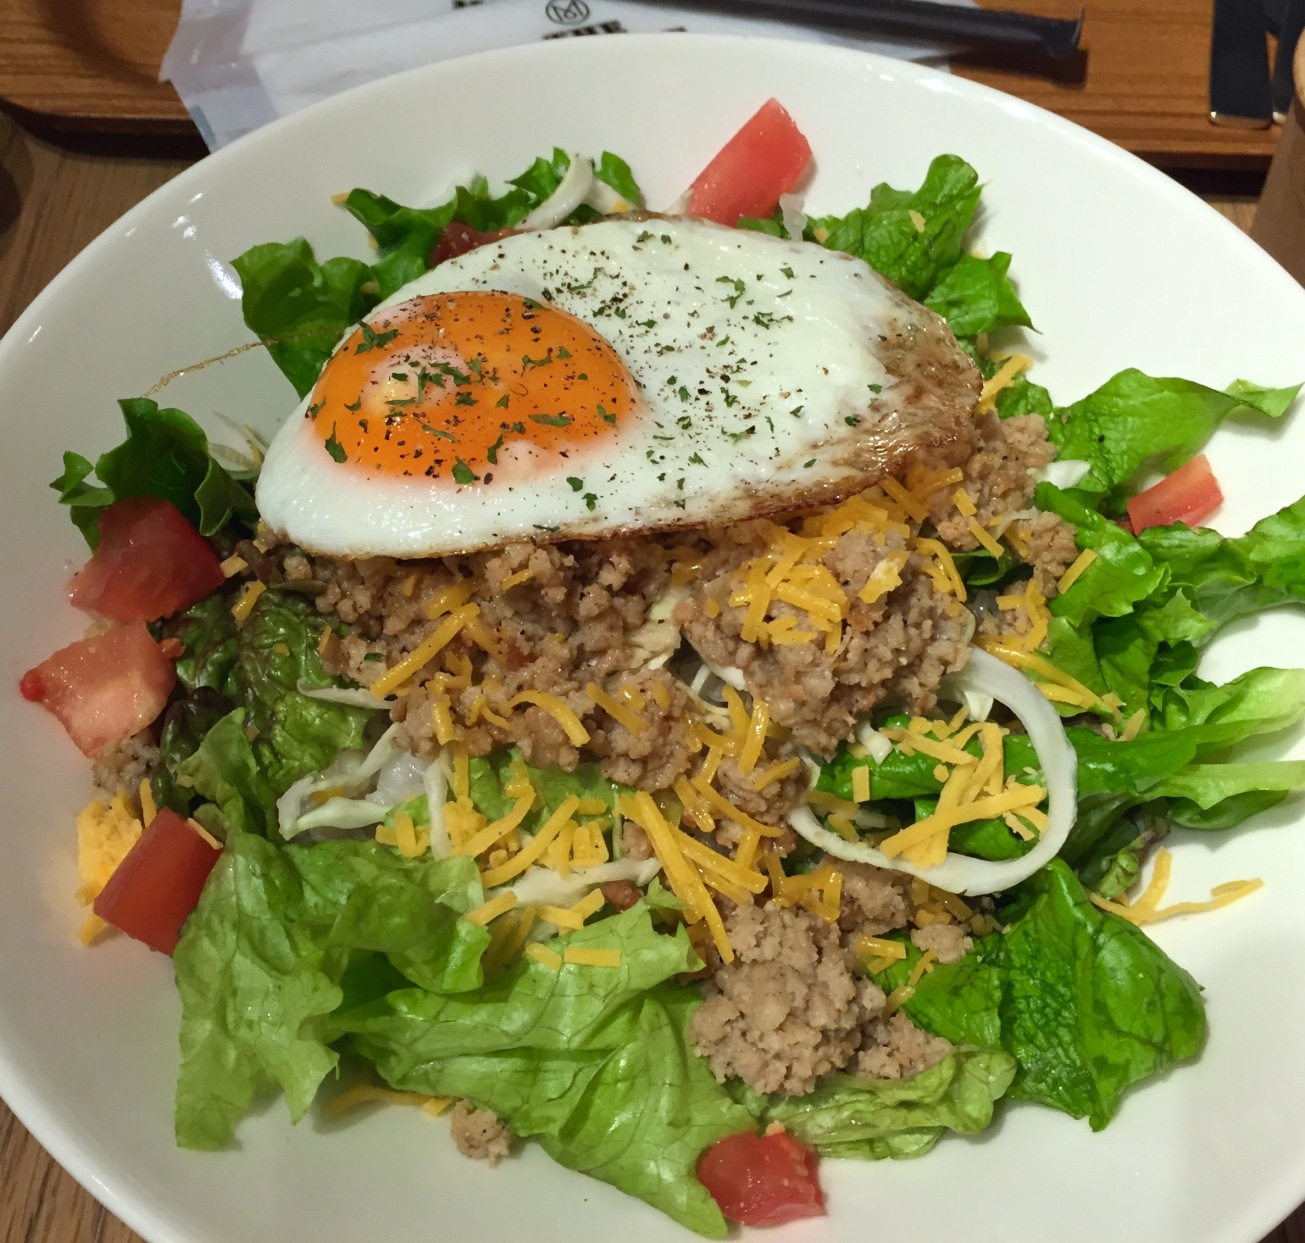 Monocle Cafe's Taco Rice